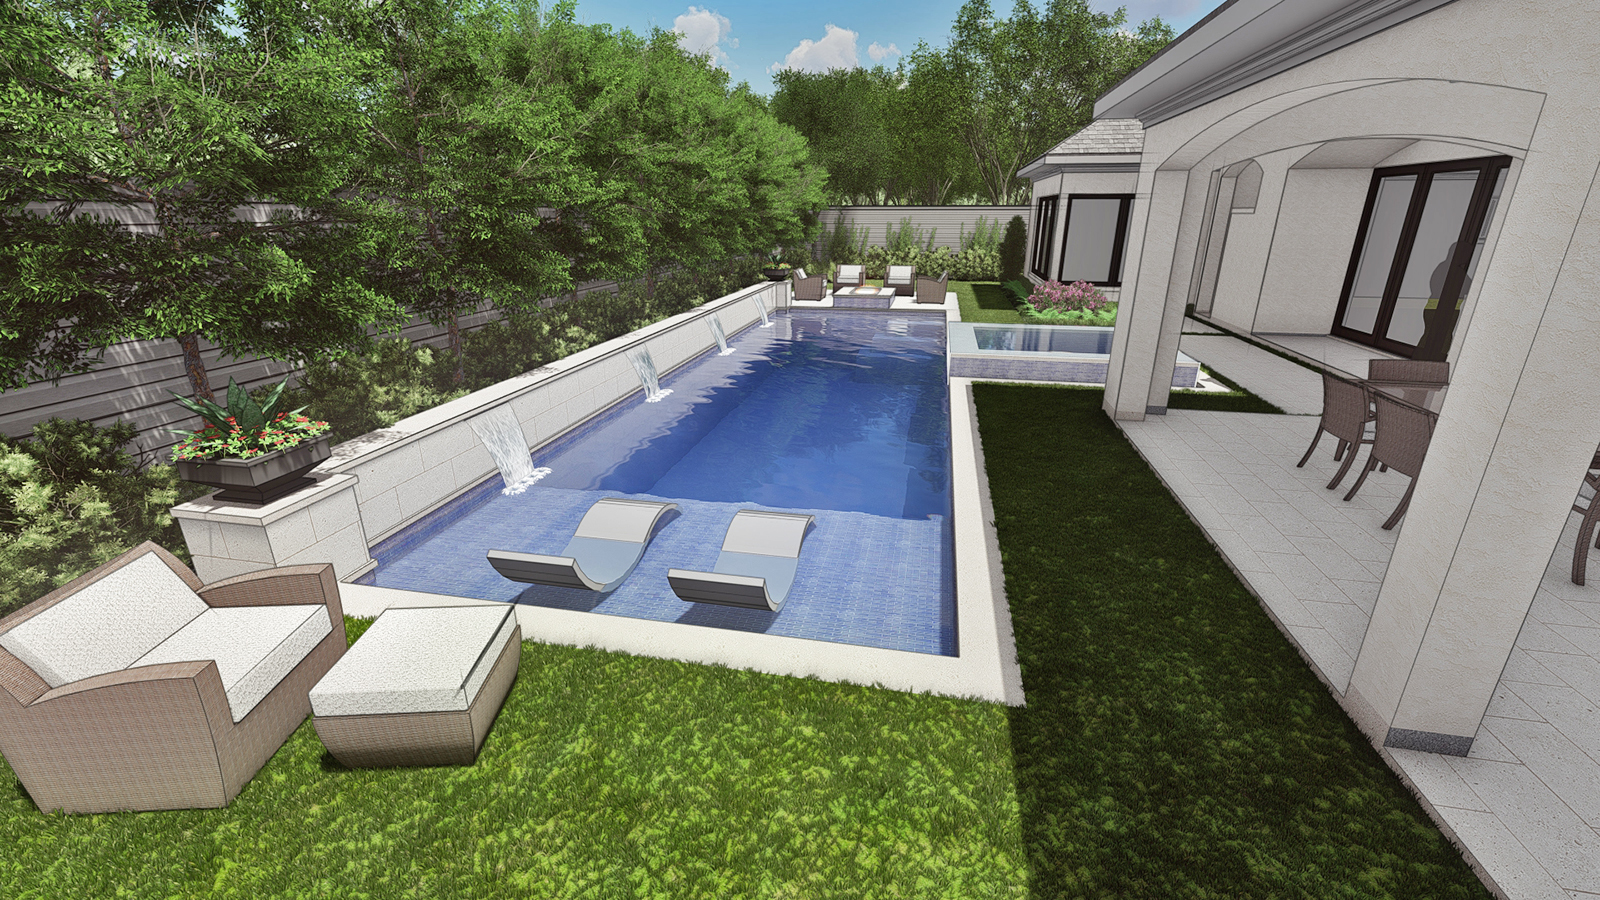 POOL VIEW TO EAST